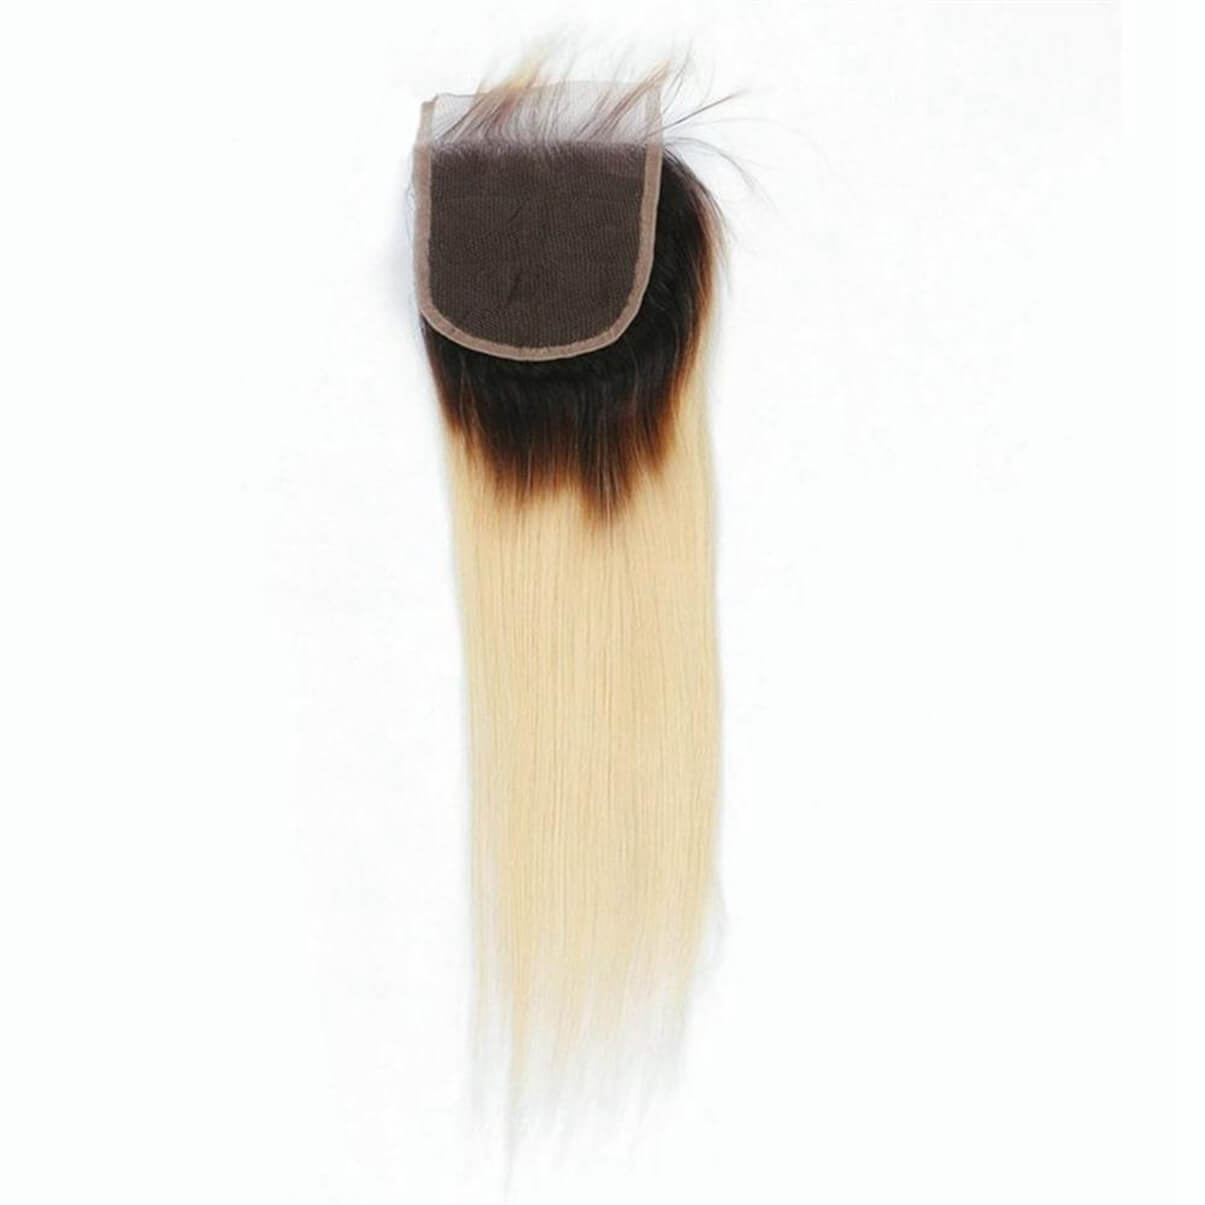 Lakihair 8A 1B/613 Blonde Ombre Straight Lace Closure 4x4 Brazilian Virgin Human Hair